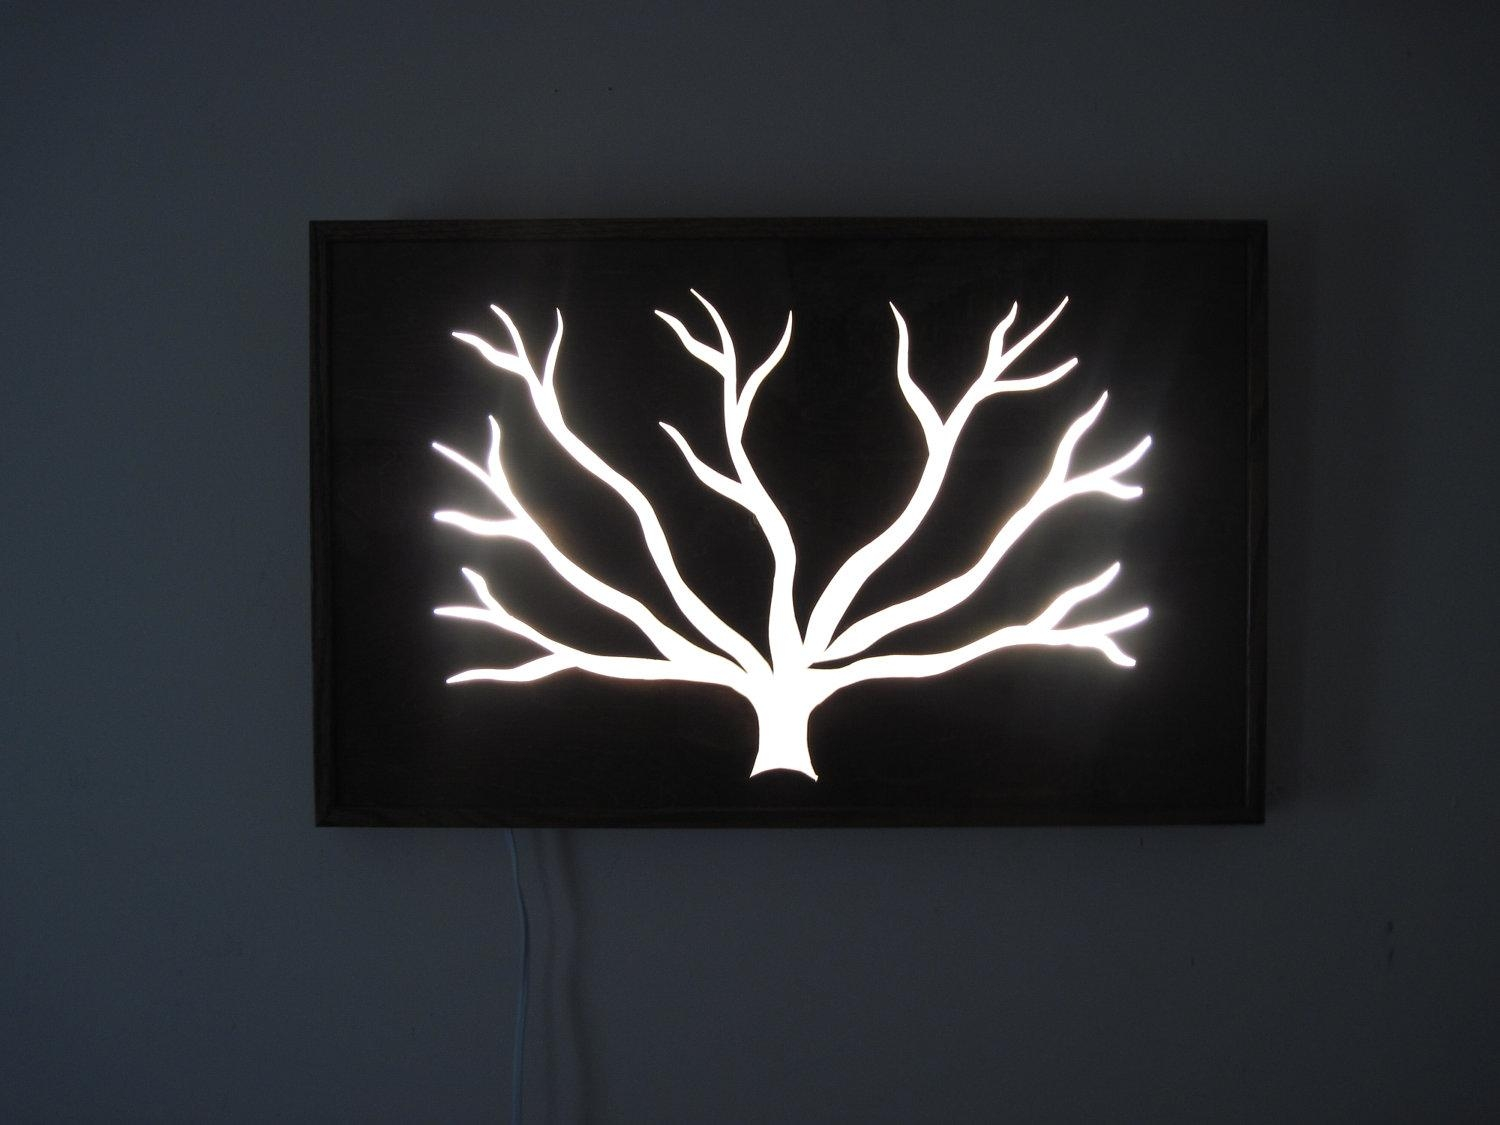 10 Reasons You Should Buy The Lates Wall Art Light Fixtures For Wall Art Lighting (Image 1 of 20)